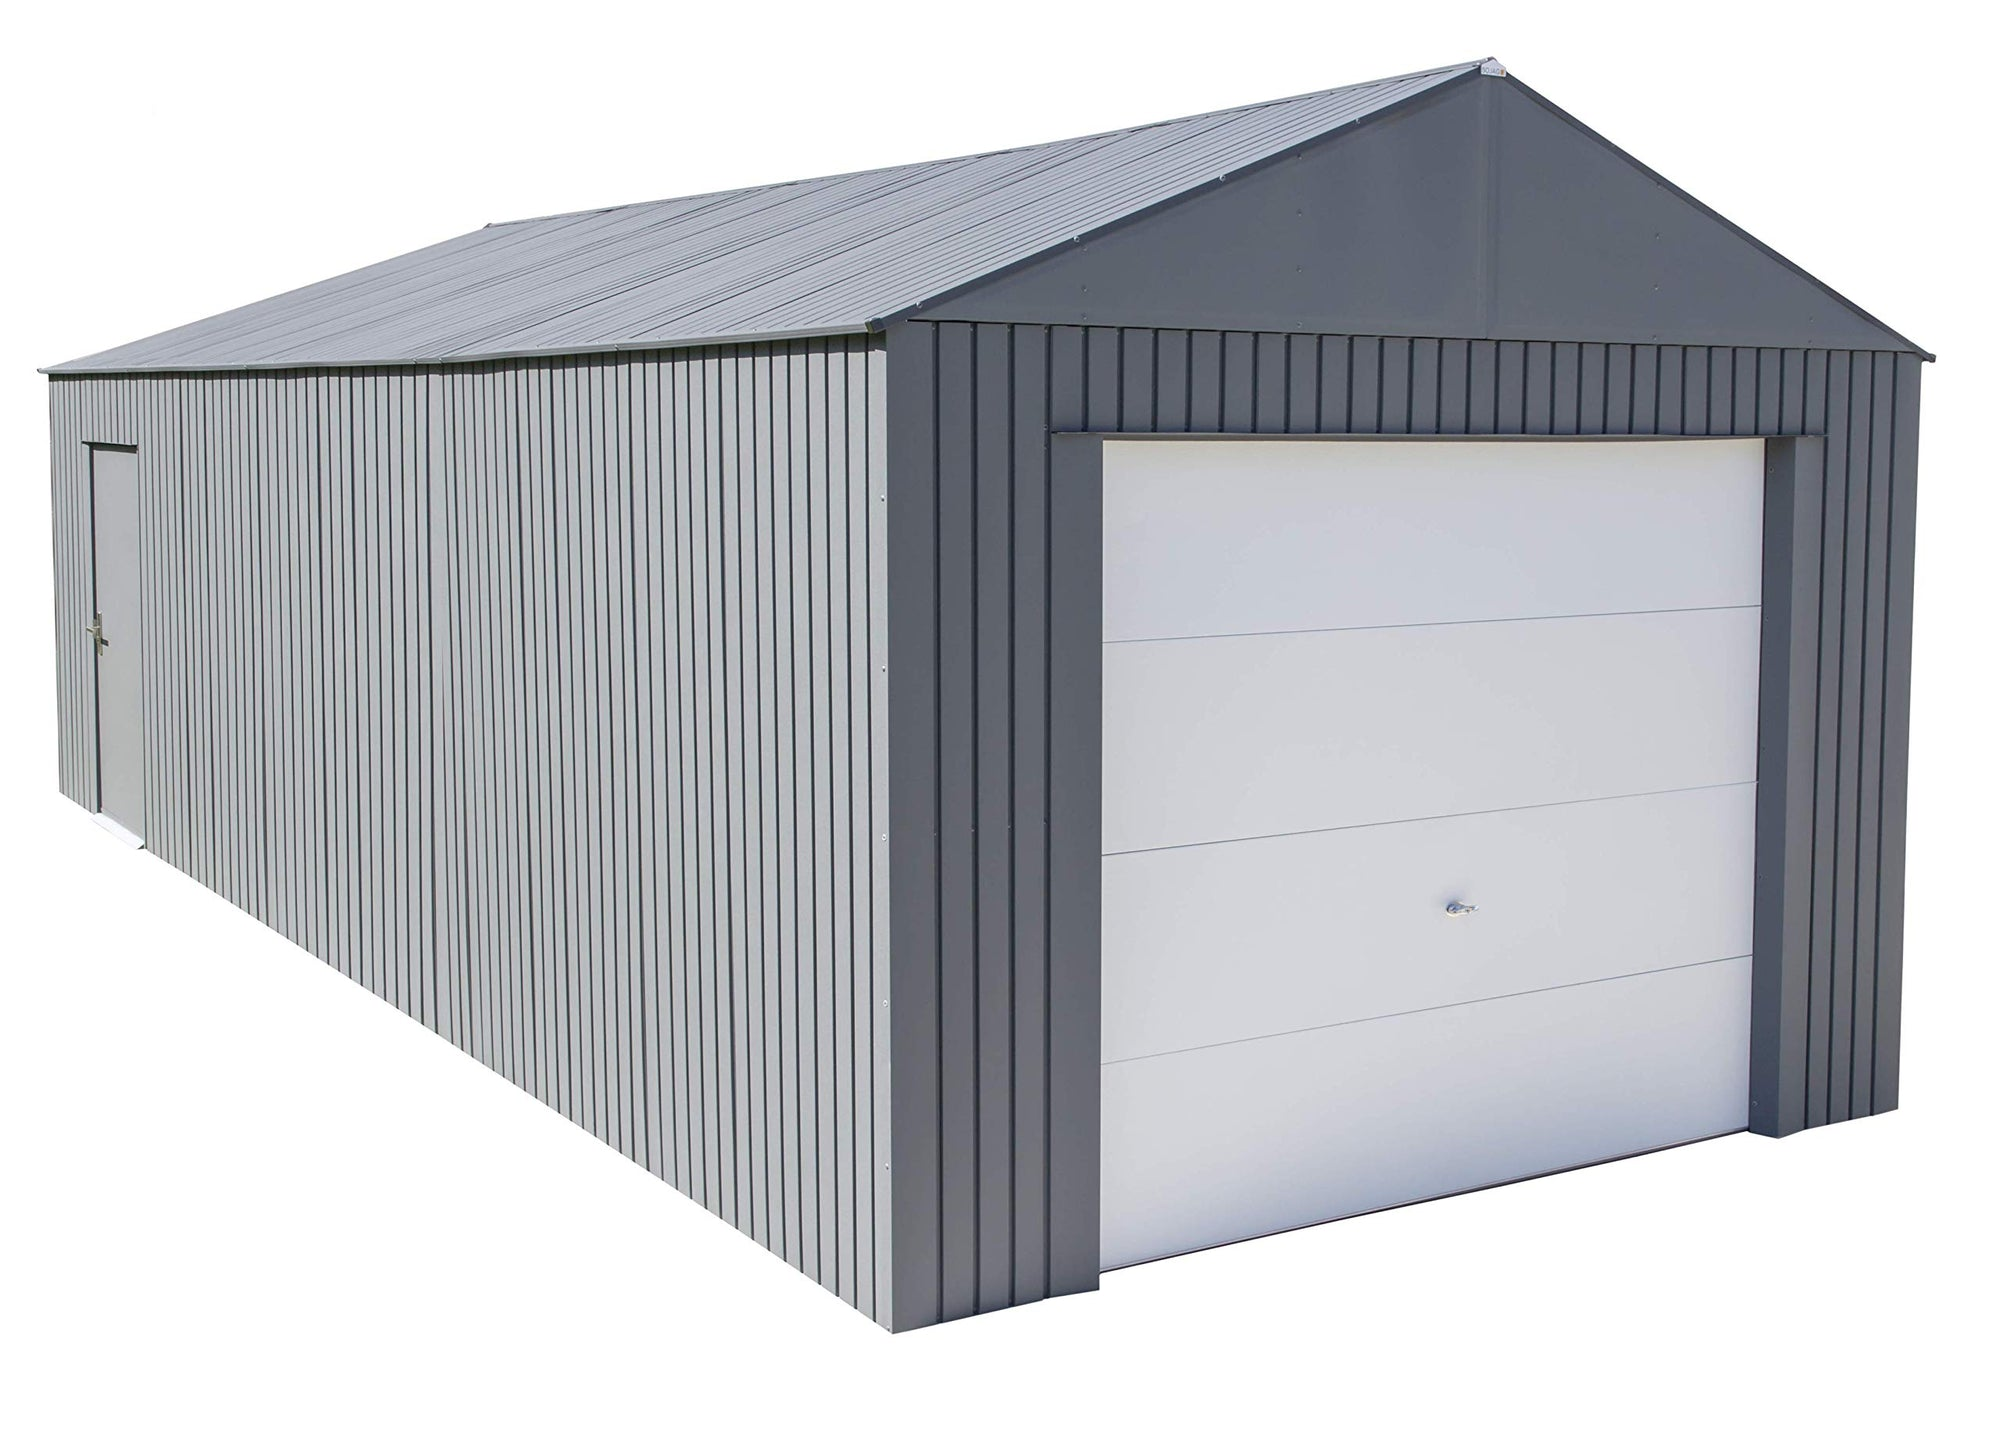 Sojag 12' x 30' Everest Galvalume Steel with Extra Tall Walls Garage Storage Building, Charcoal